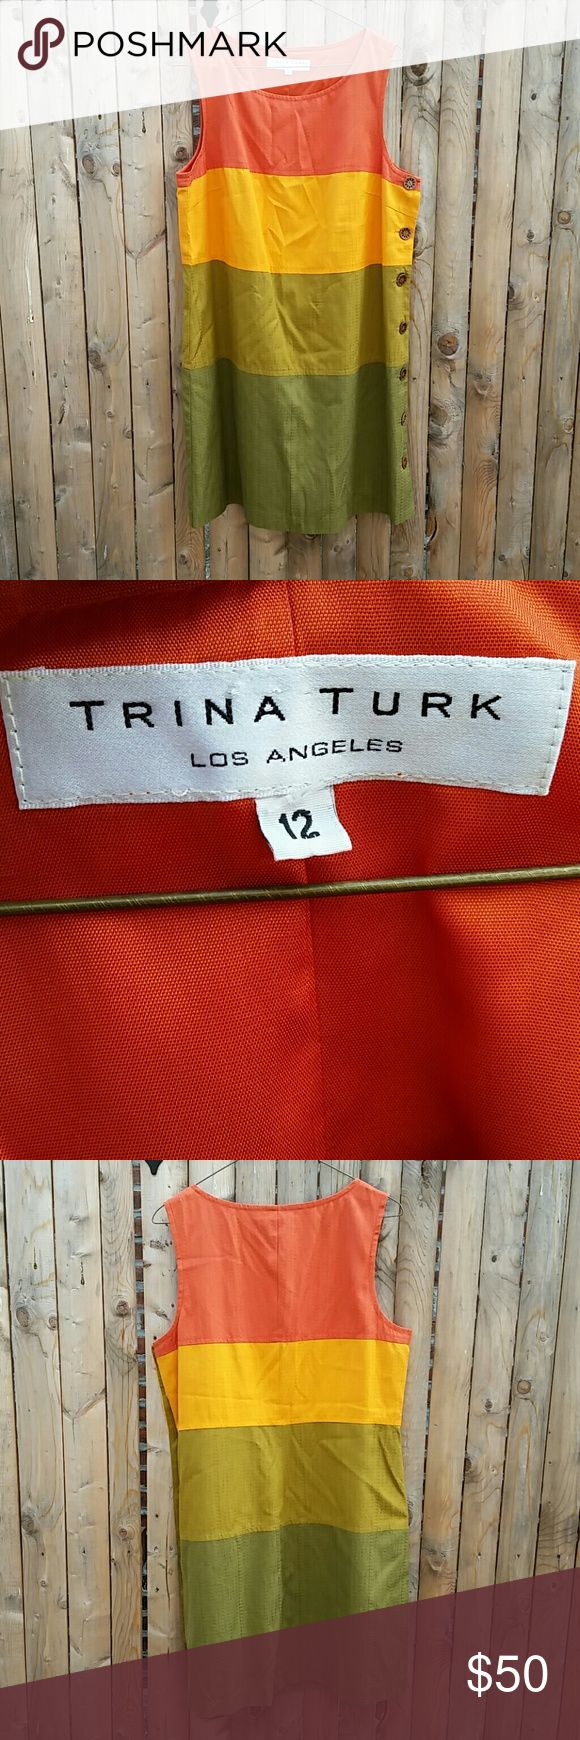 Trina Turk silk/cotton blend shift dress sz 12 Beautiful multi-colored shift dress from Trina Turk! Very gently worn and in excellent condition! There is a very small snag on the back bottom left side of dress where one of the sitiches got caught on a hanger -- otherwise in excellent condition! No holes, stains, tears, or defects! Wooden side buttons and orange lining with lace edge elevate this dress!  Orange/dandelion/yellow green/green Size 12 Body: 68% silk 32% cotton  Lining: 100%…